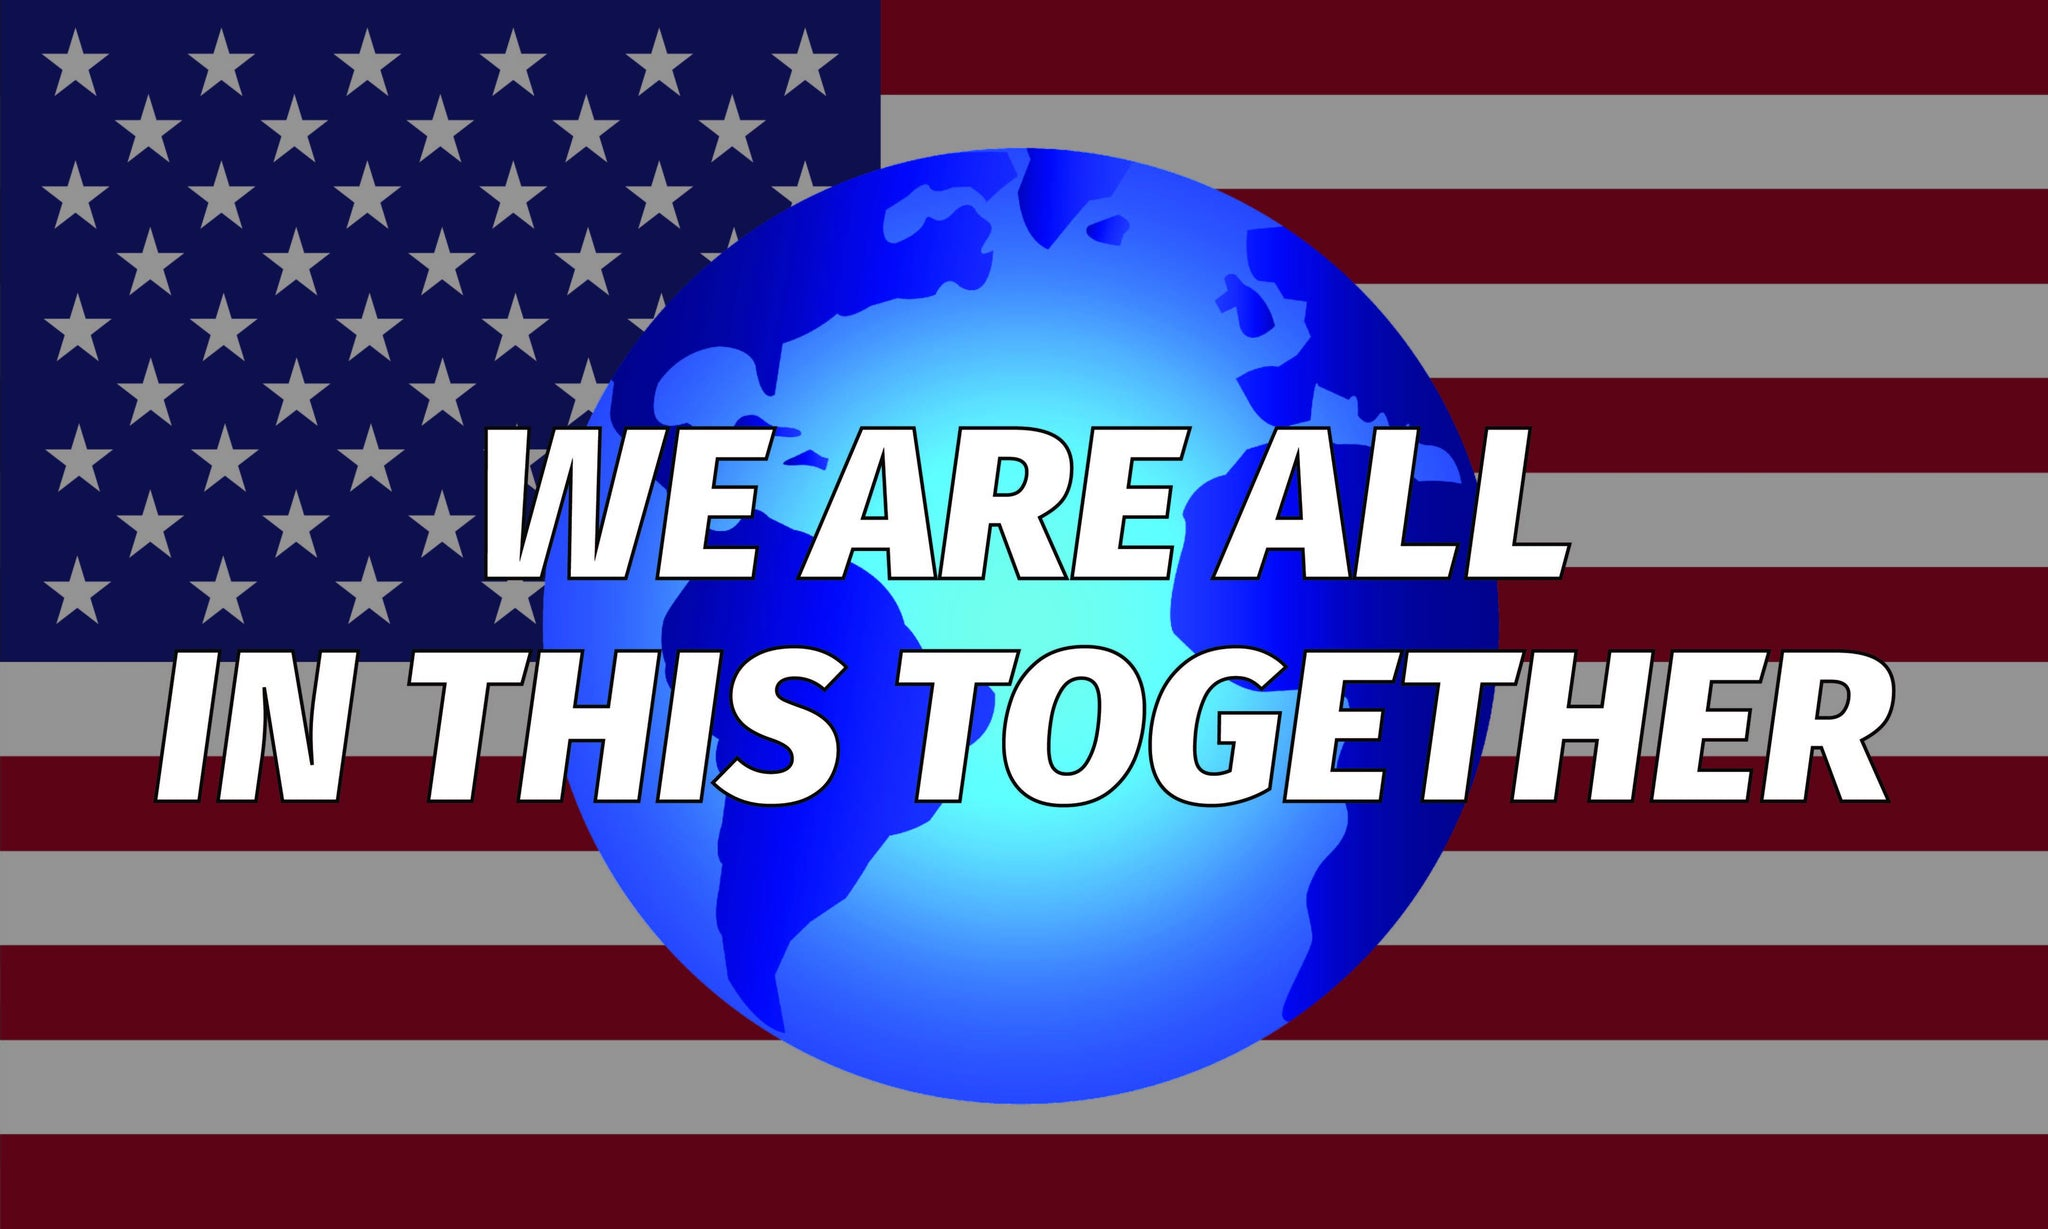 Unity Flag - We Are All In This Together